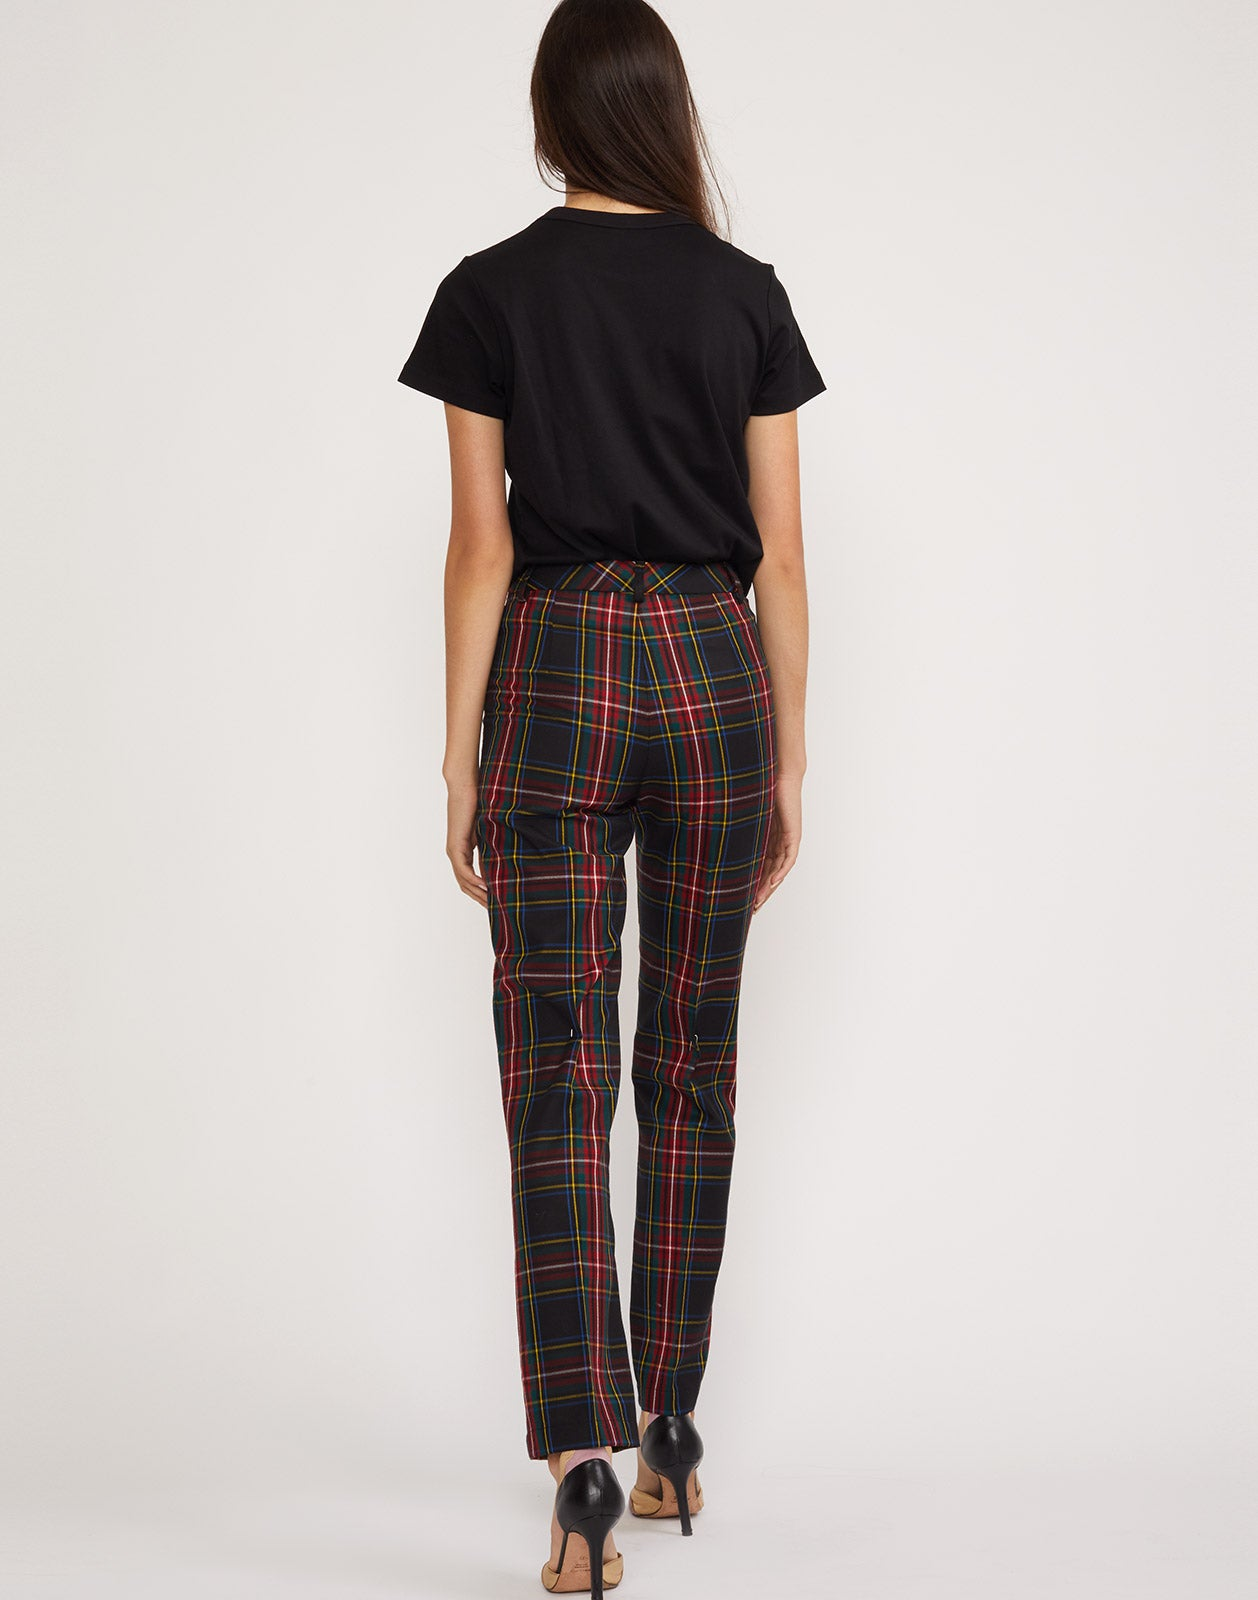 Back view of the Astor plaid wool pants.